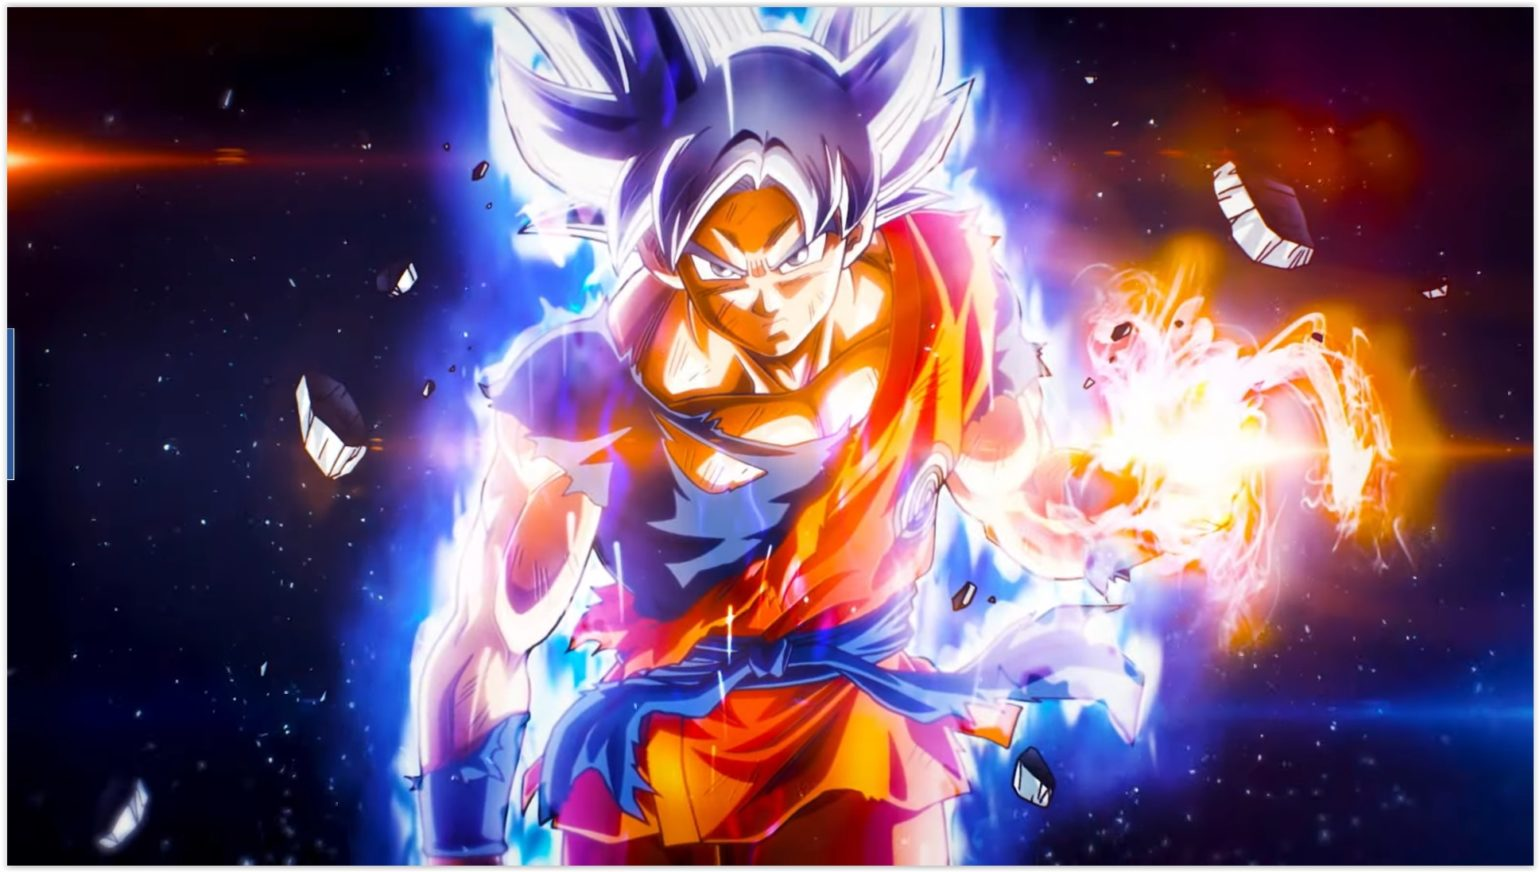 Super Dragon Ball Heroes - Goku Super Instinct